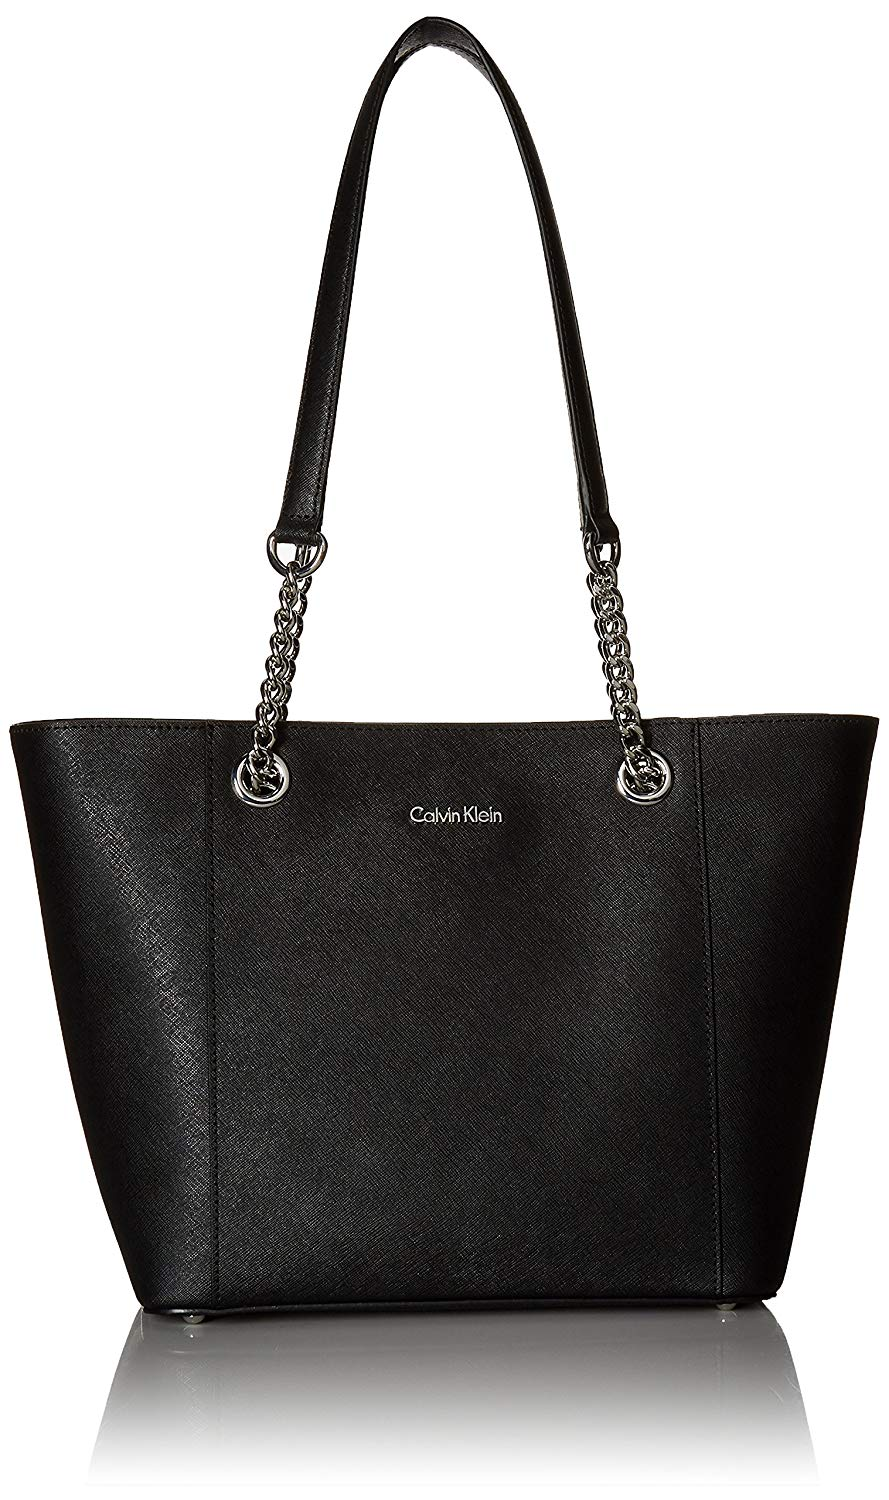 This Calvin Klein tote is the perfect professional purse